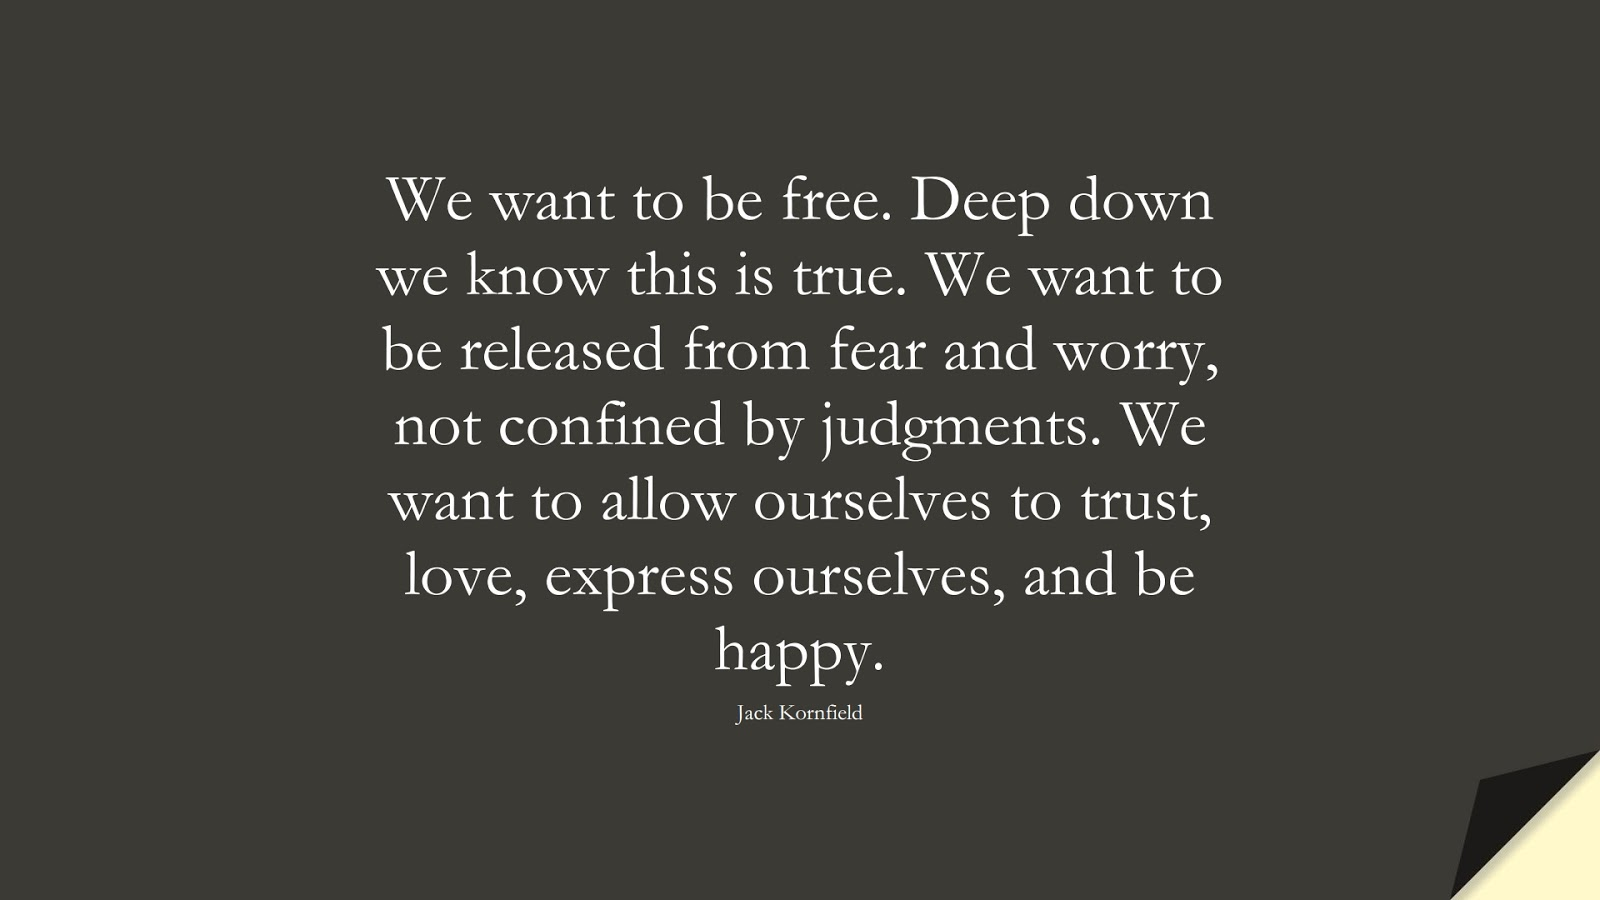 We want to be free. Deep down we know this is true. We want to be released from fear and worry, not confined by judgments. We want to allow ourselves to trust, love, express ourselves, and be happy. (Jack Kornfield);  #FearQuotes